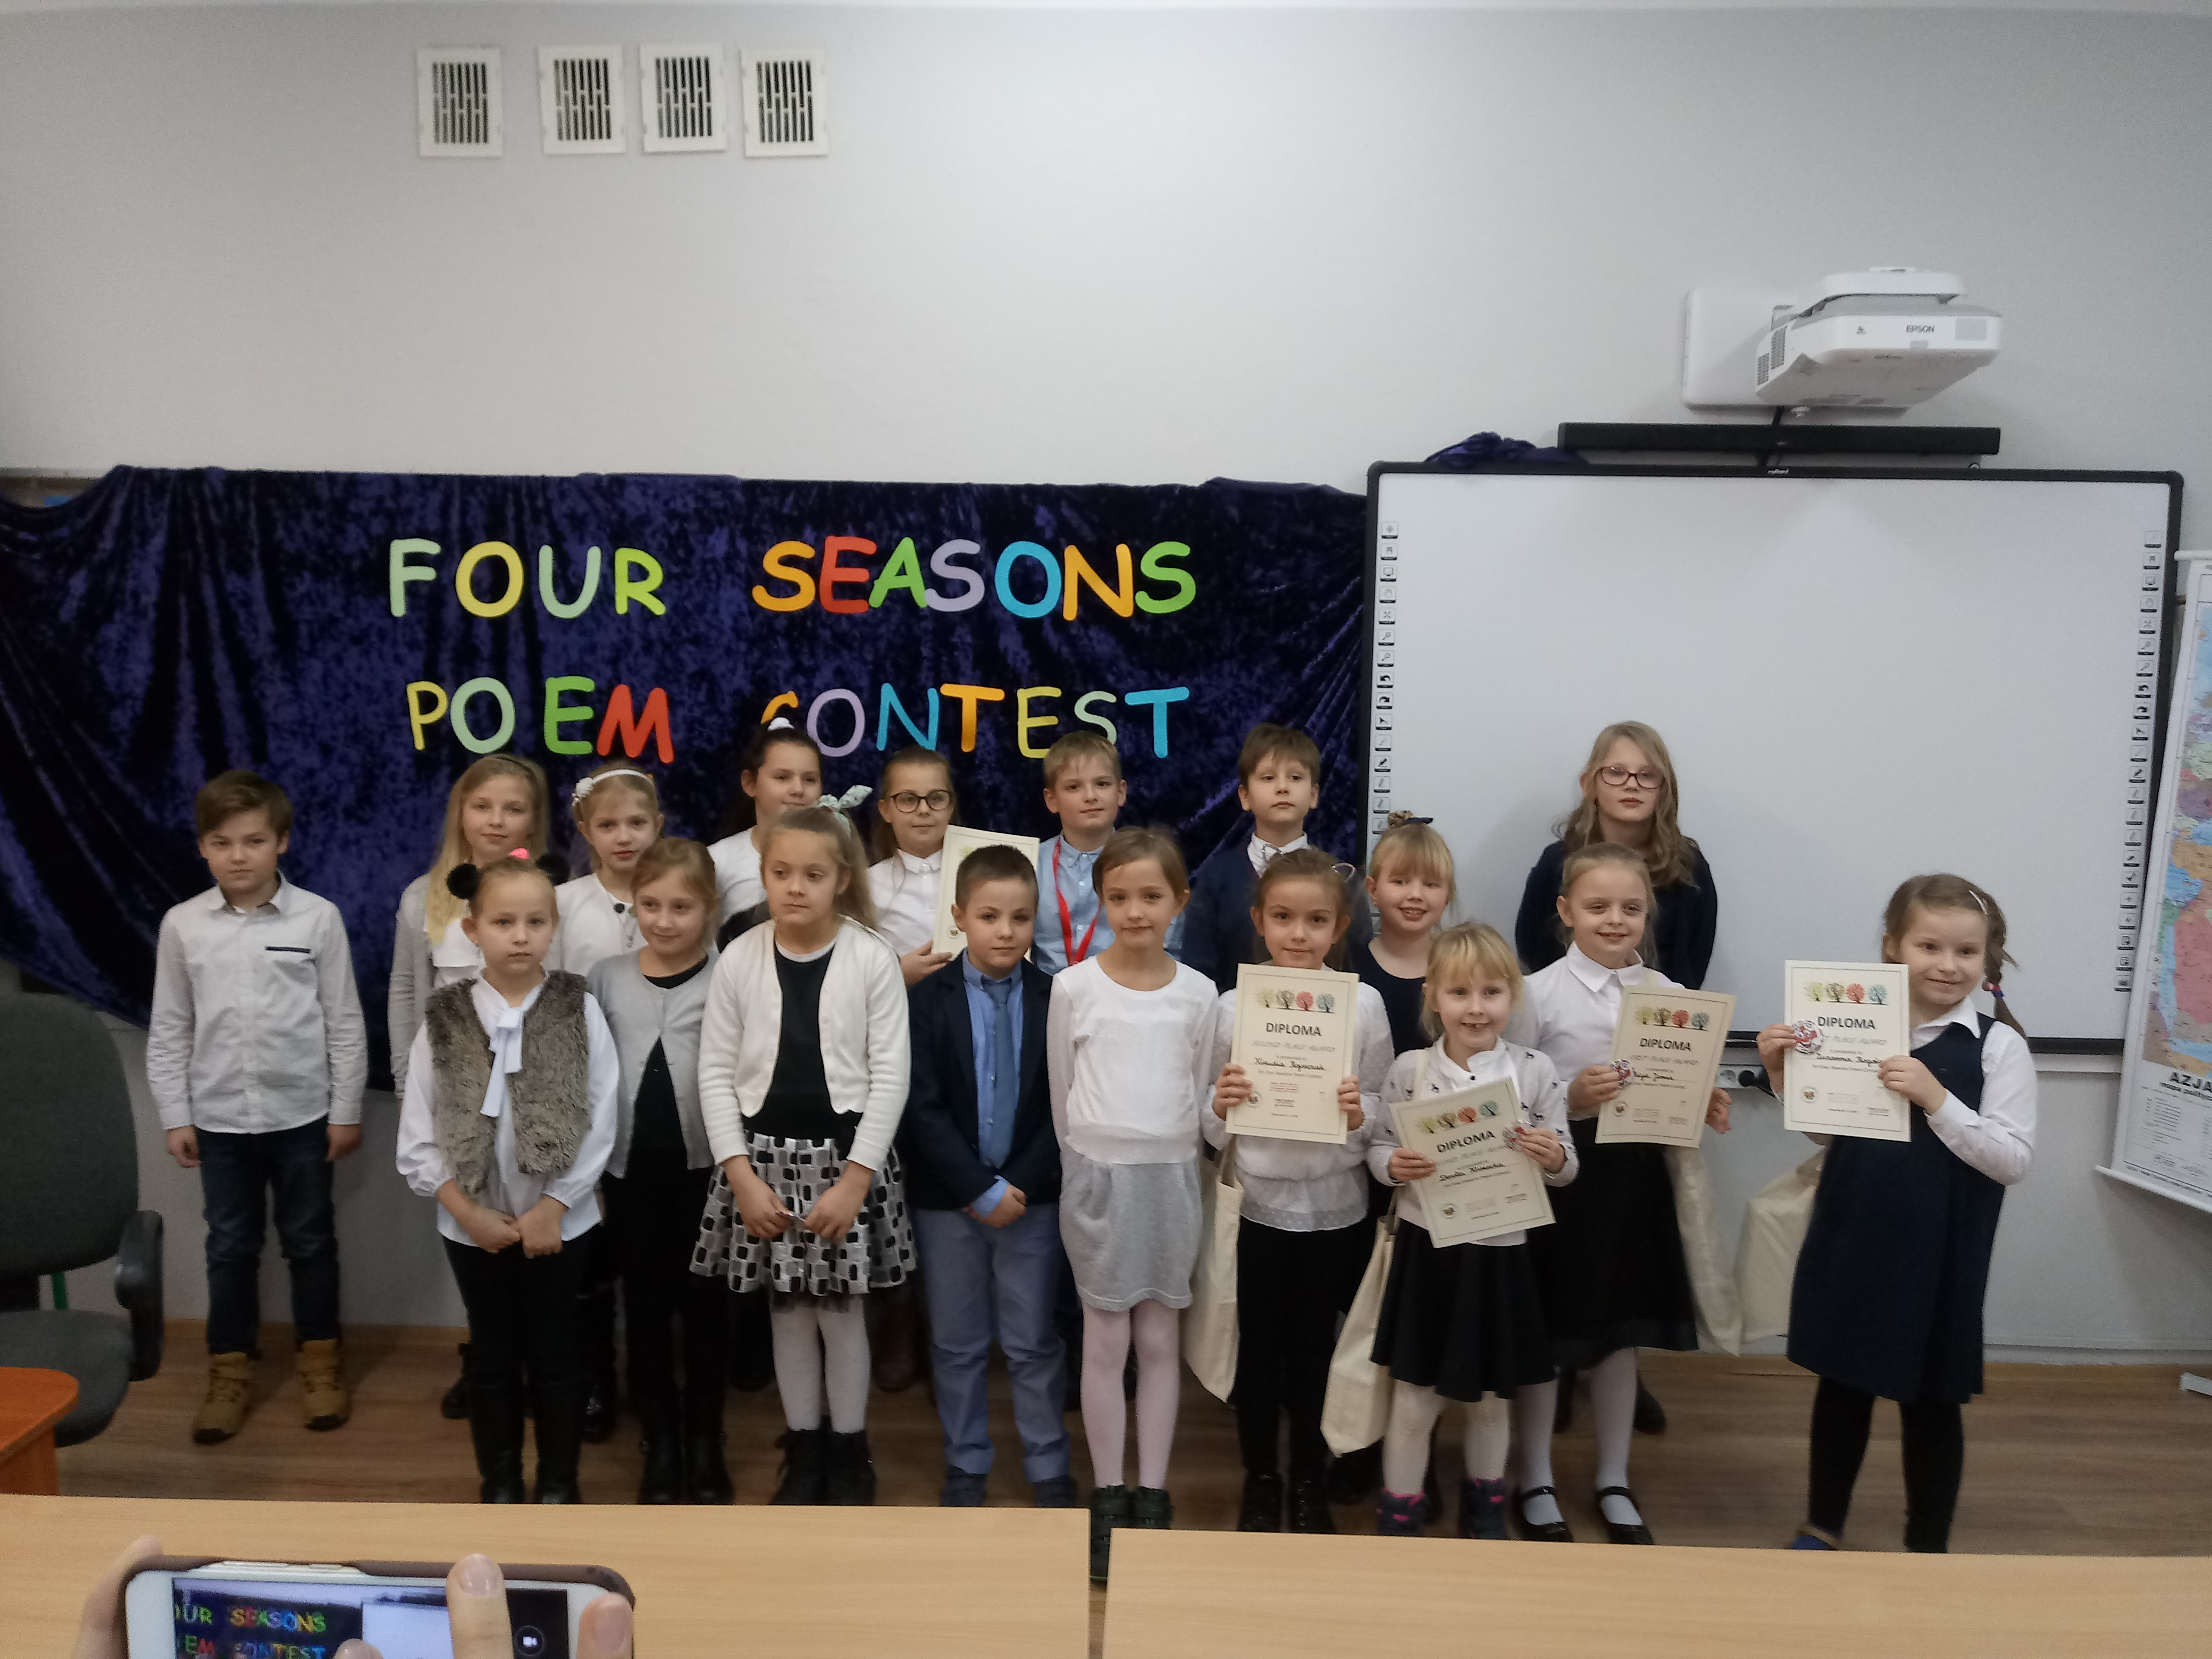 Konkurs FOUR SEASONS POEM CONTEST